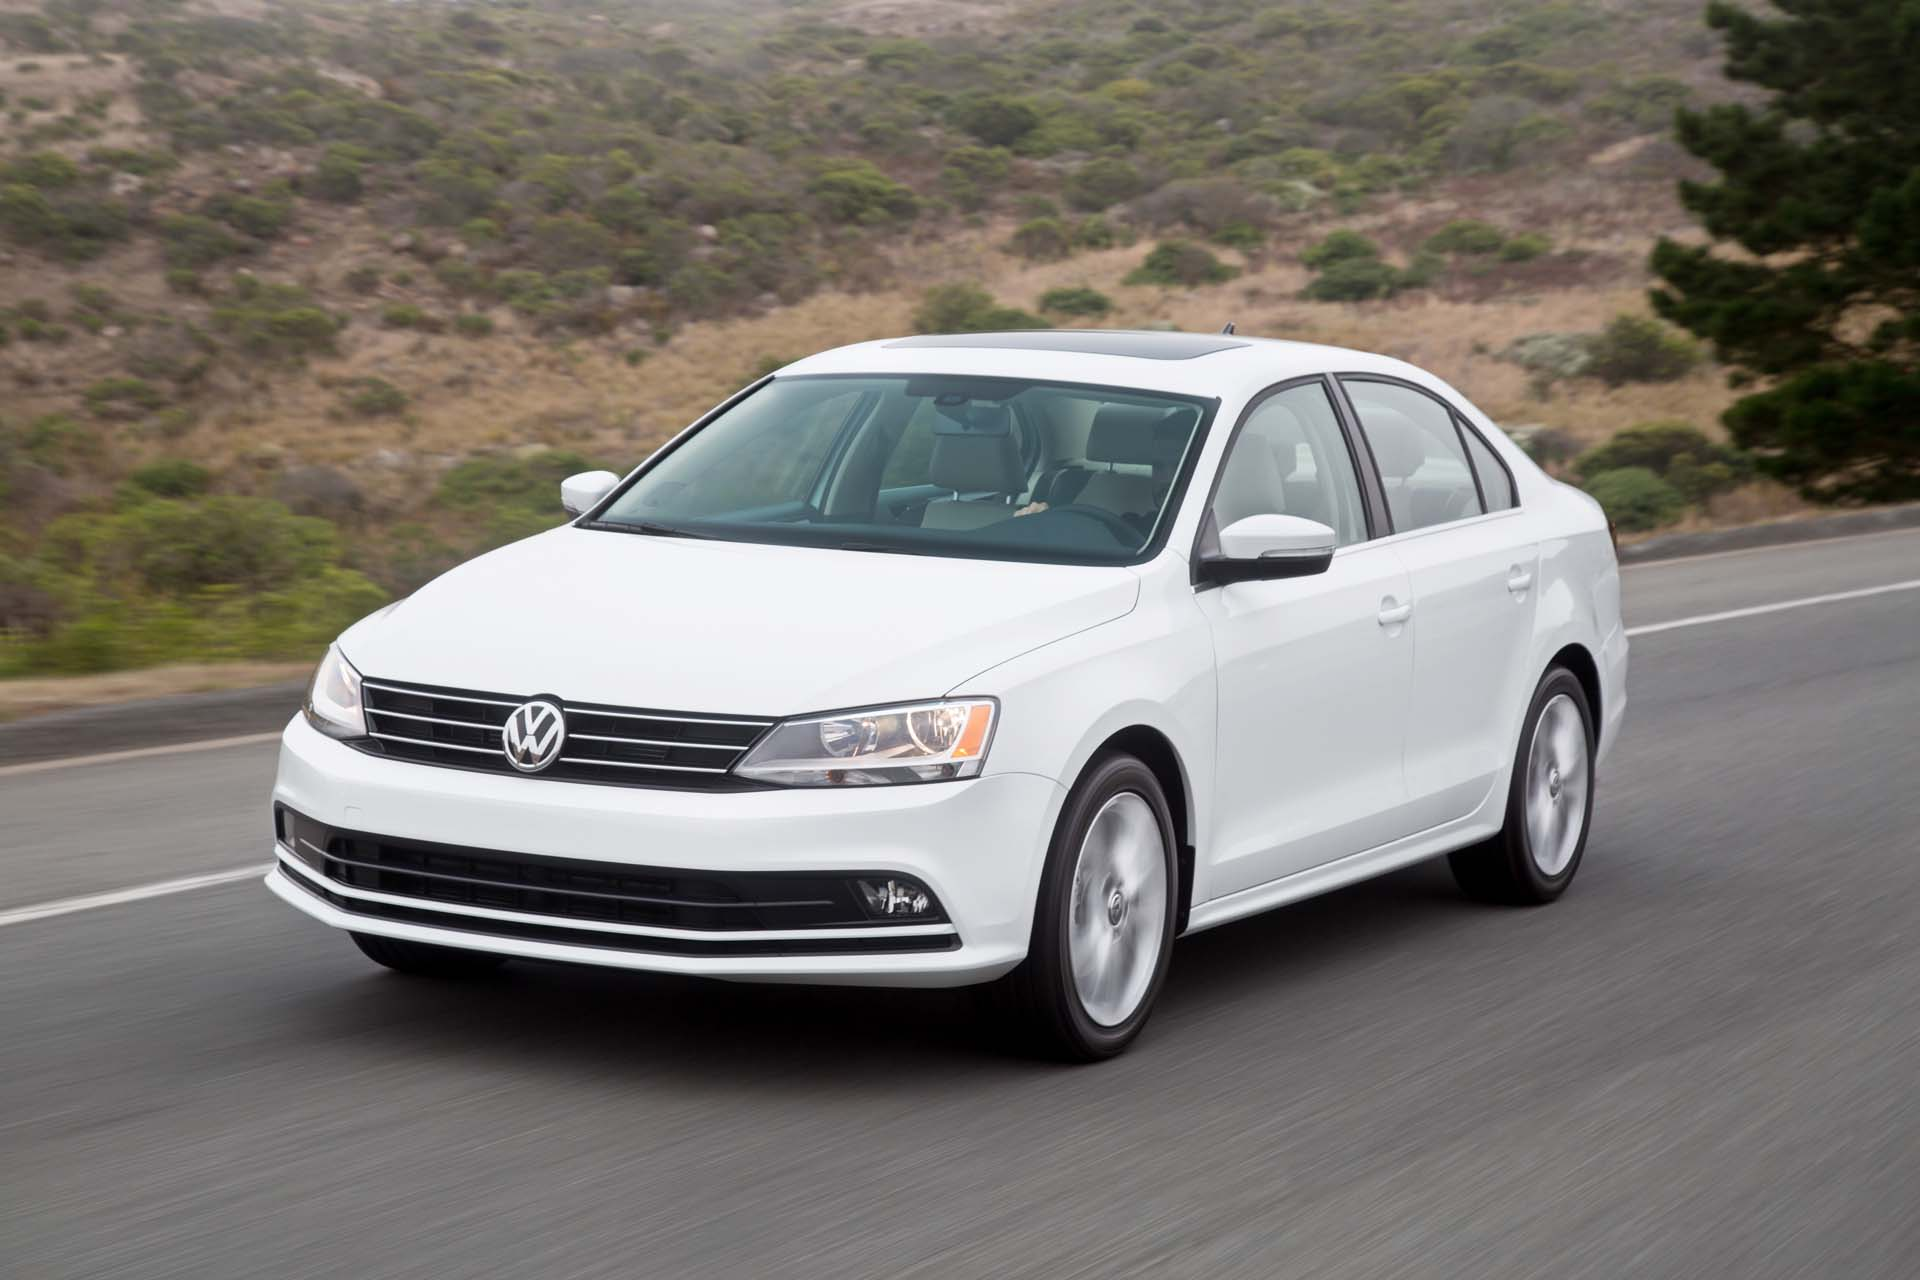 2017 Volkswagen Jetta Vw Review Ratings Specs Prices